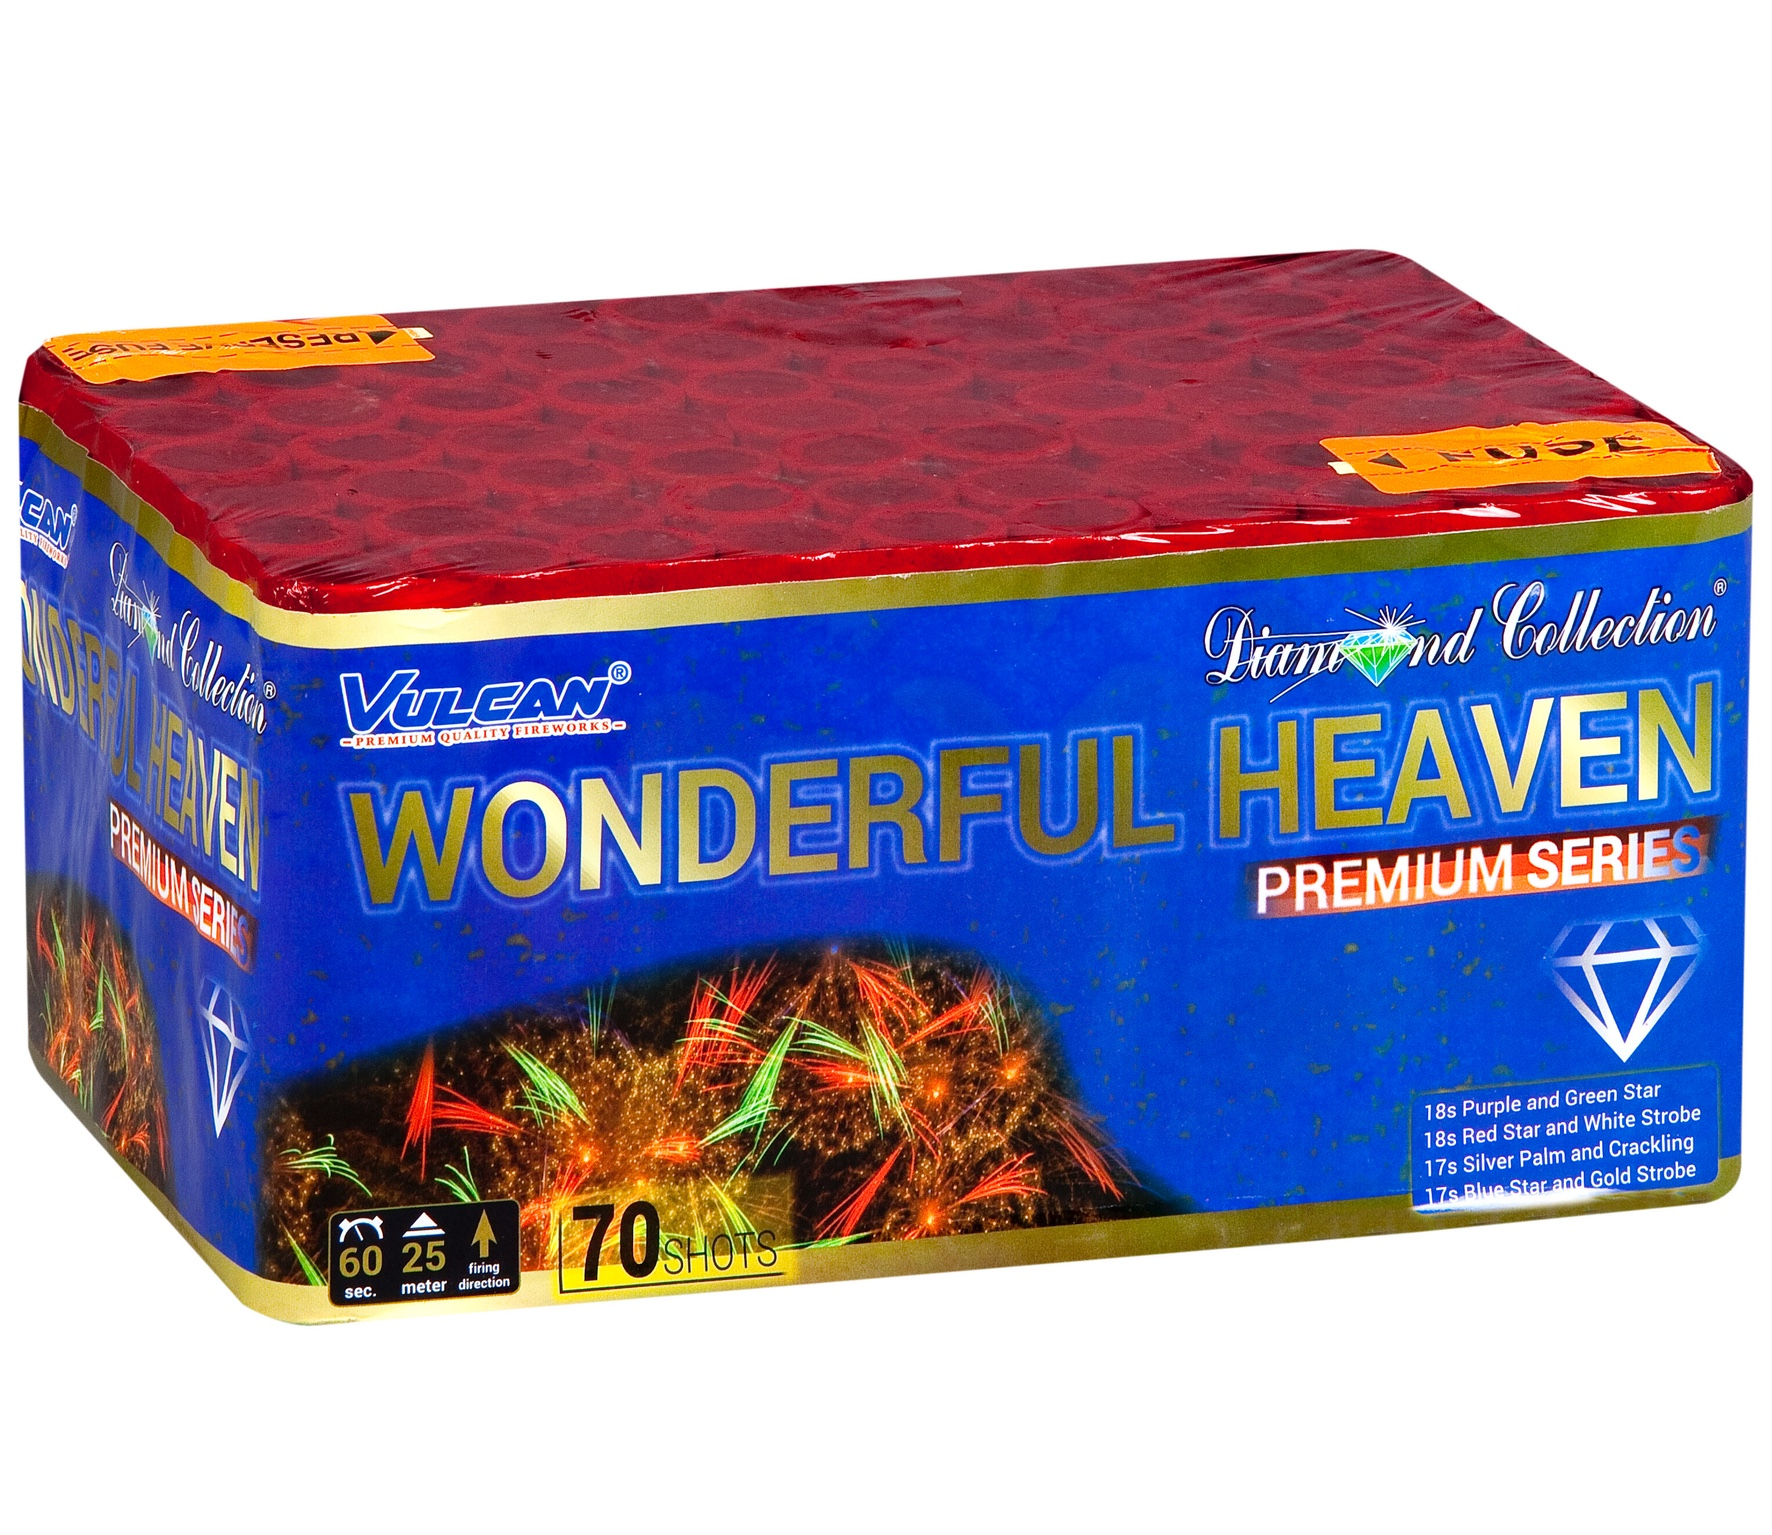 Wonderful Heaven